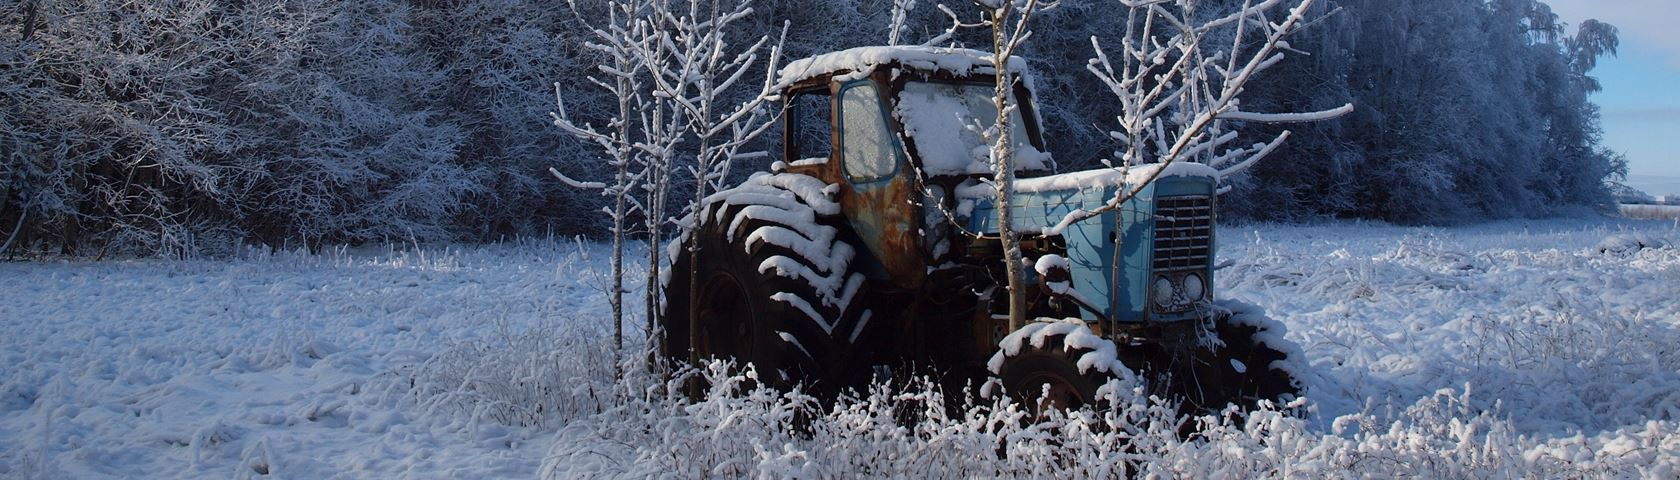 Old Tractor in the Snow